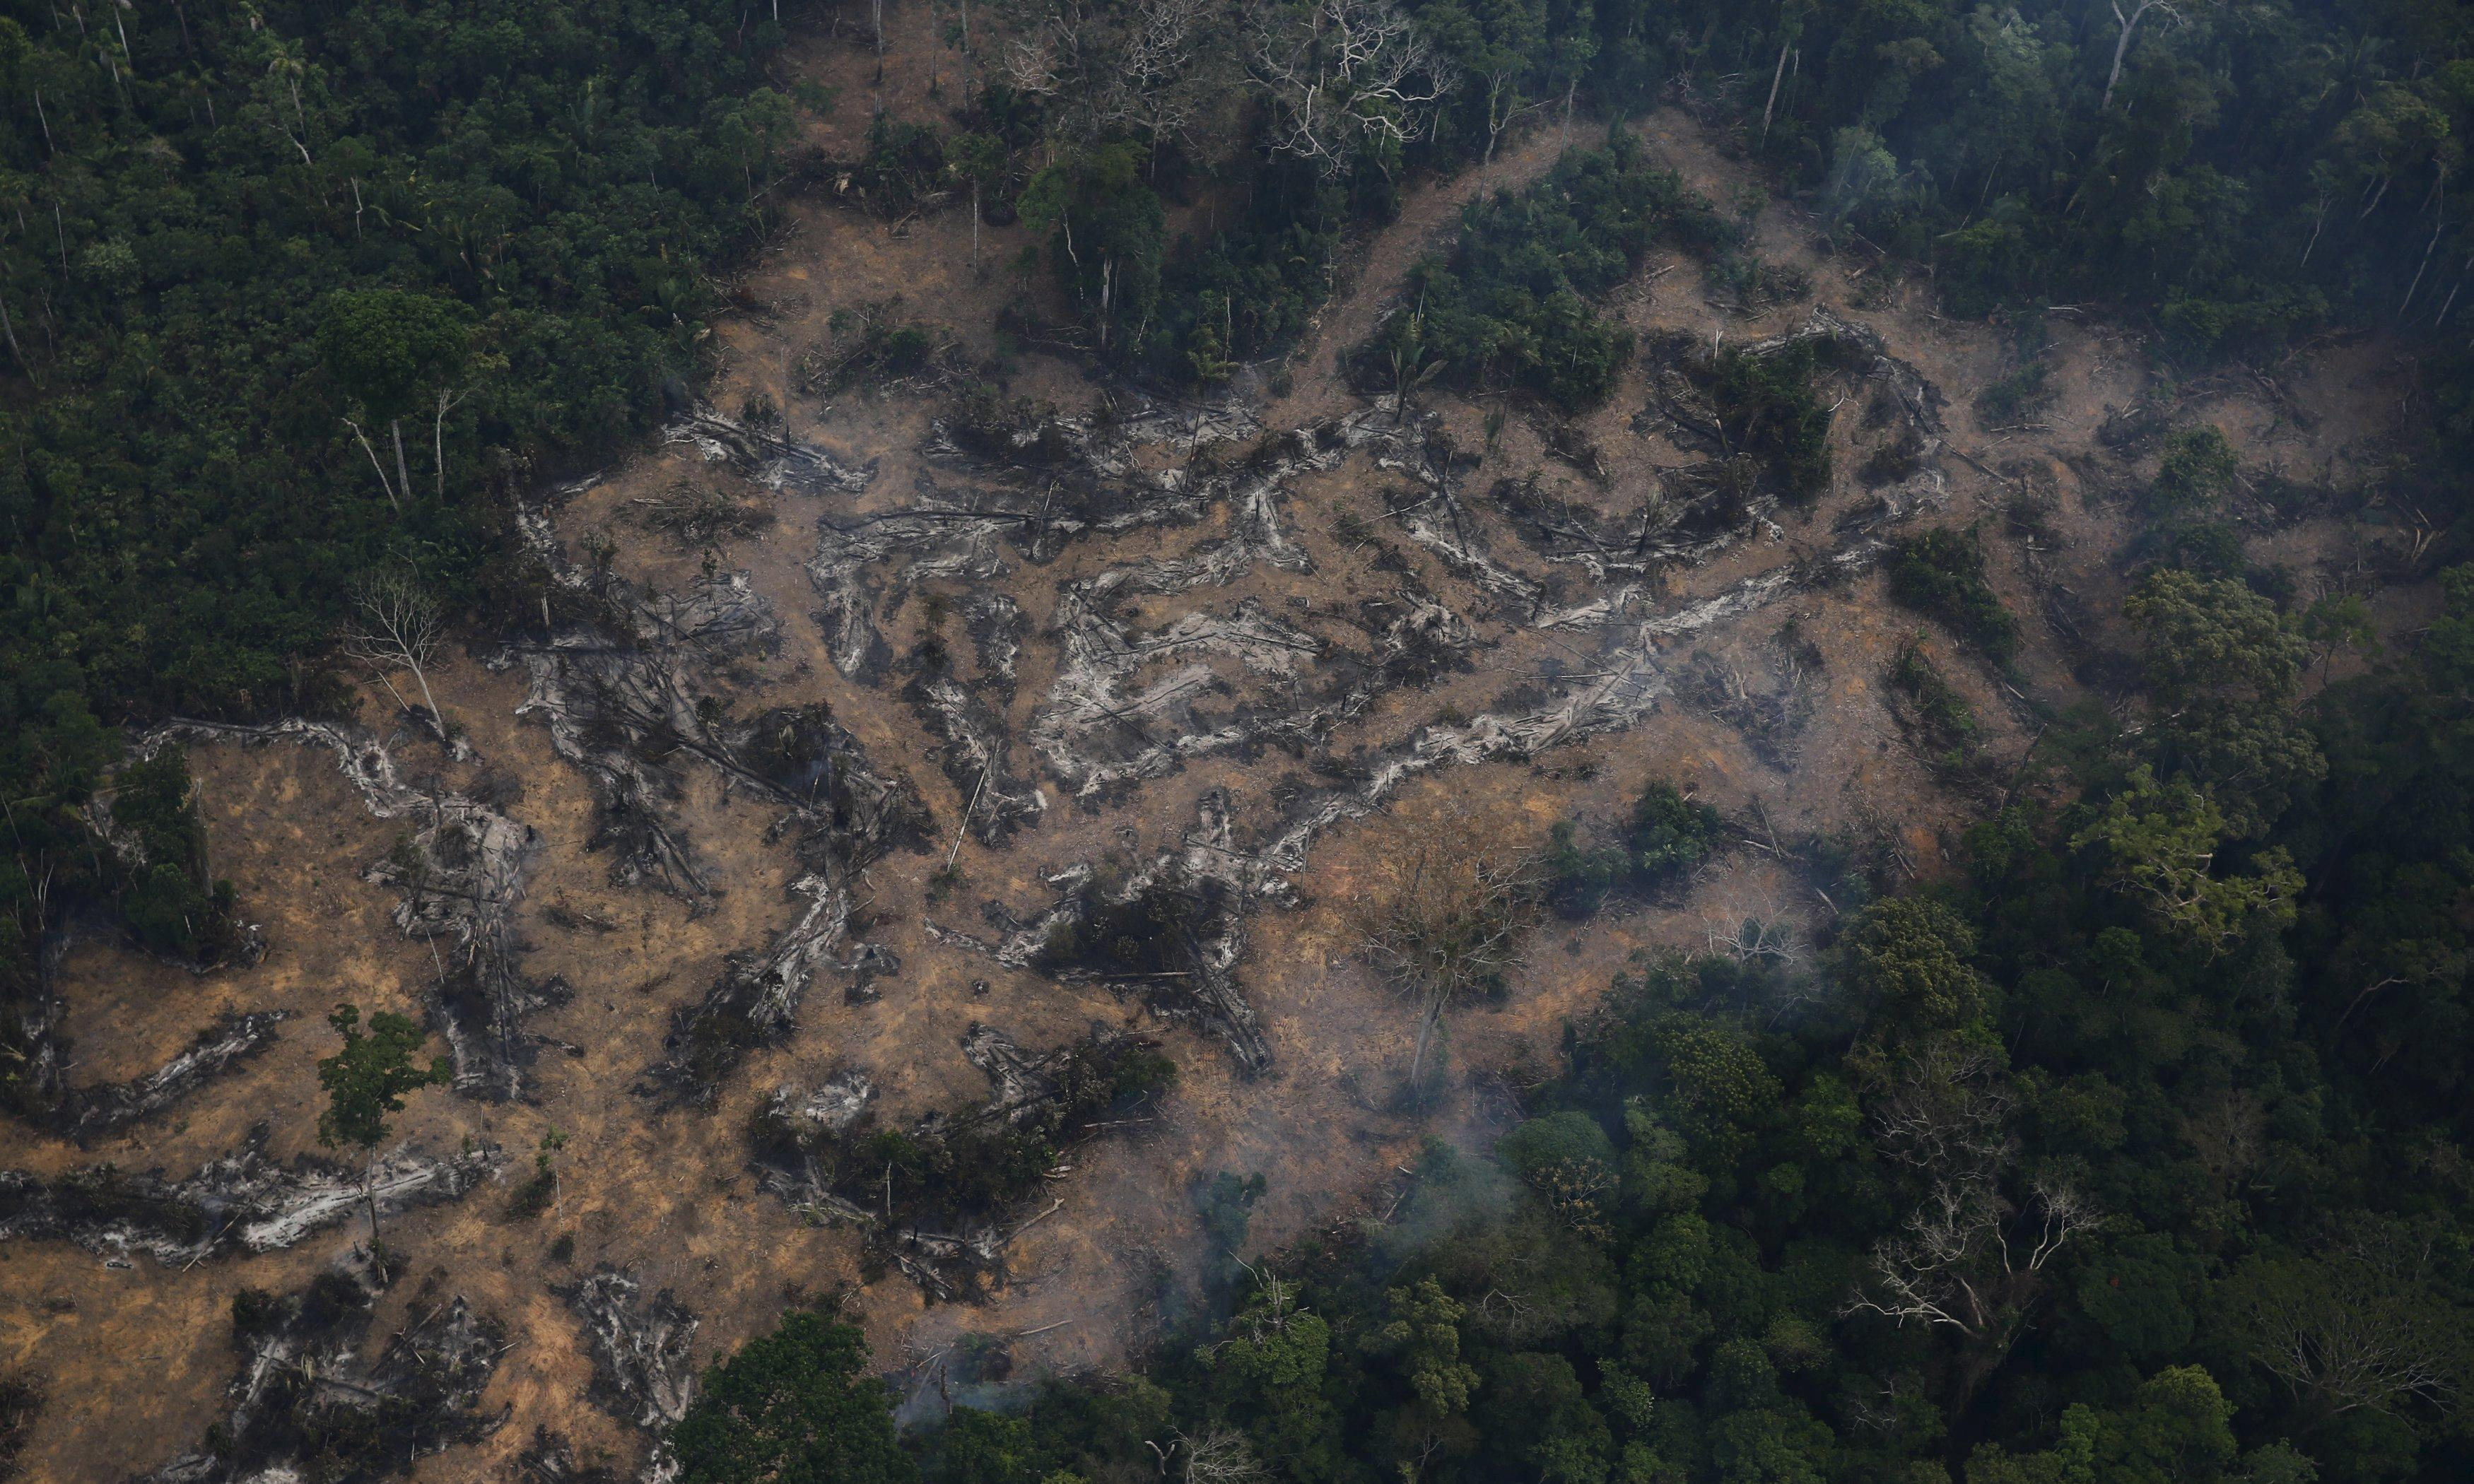 a report on the deforestation in brazil Deforestation will have increasingly serious consequences for biodiversity, humans, and climate the fao report is based on statistics provided by countries themselves brazil, the leader, cleared over 42 million hectares, an area the size of california.